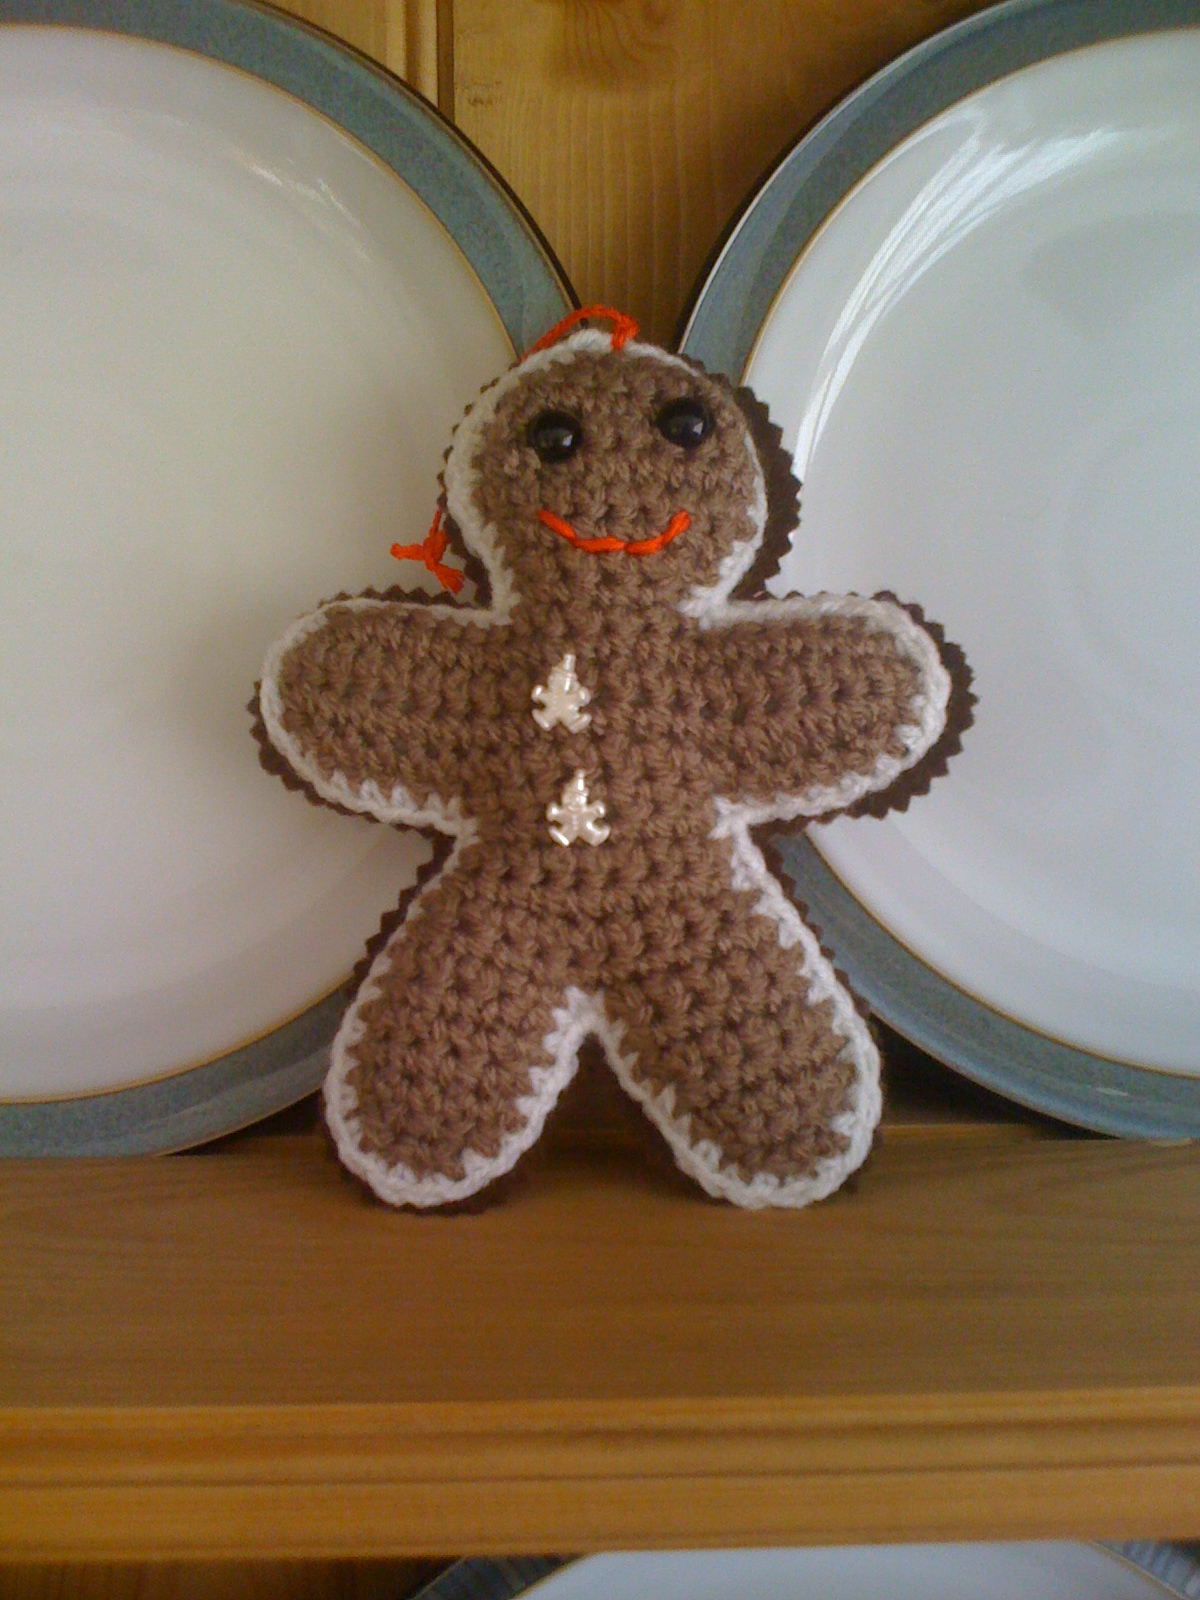 Mummycat gets organised...: Week 5 decoration- Crochet Gingerbread Man